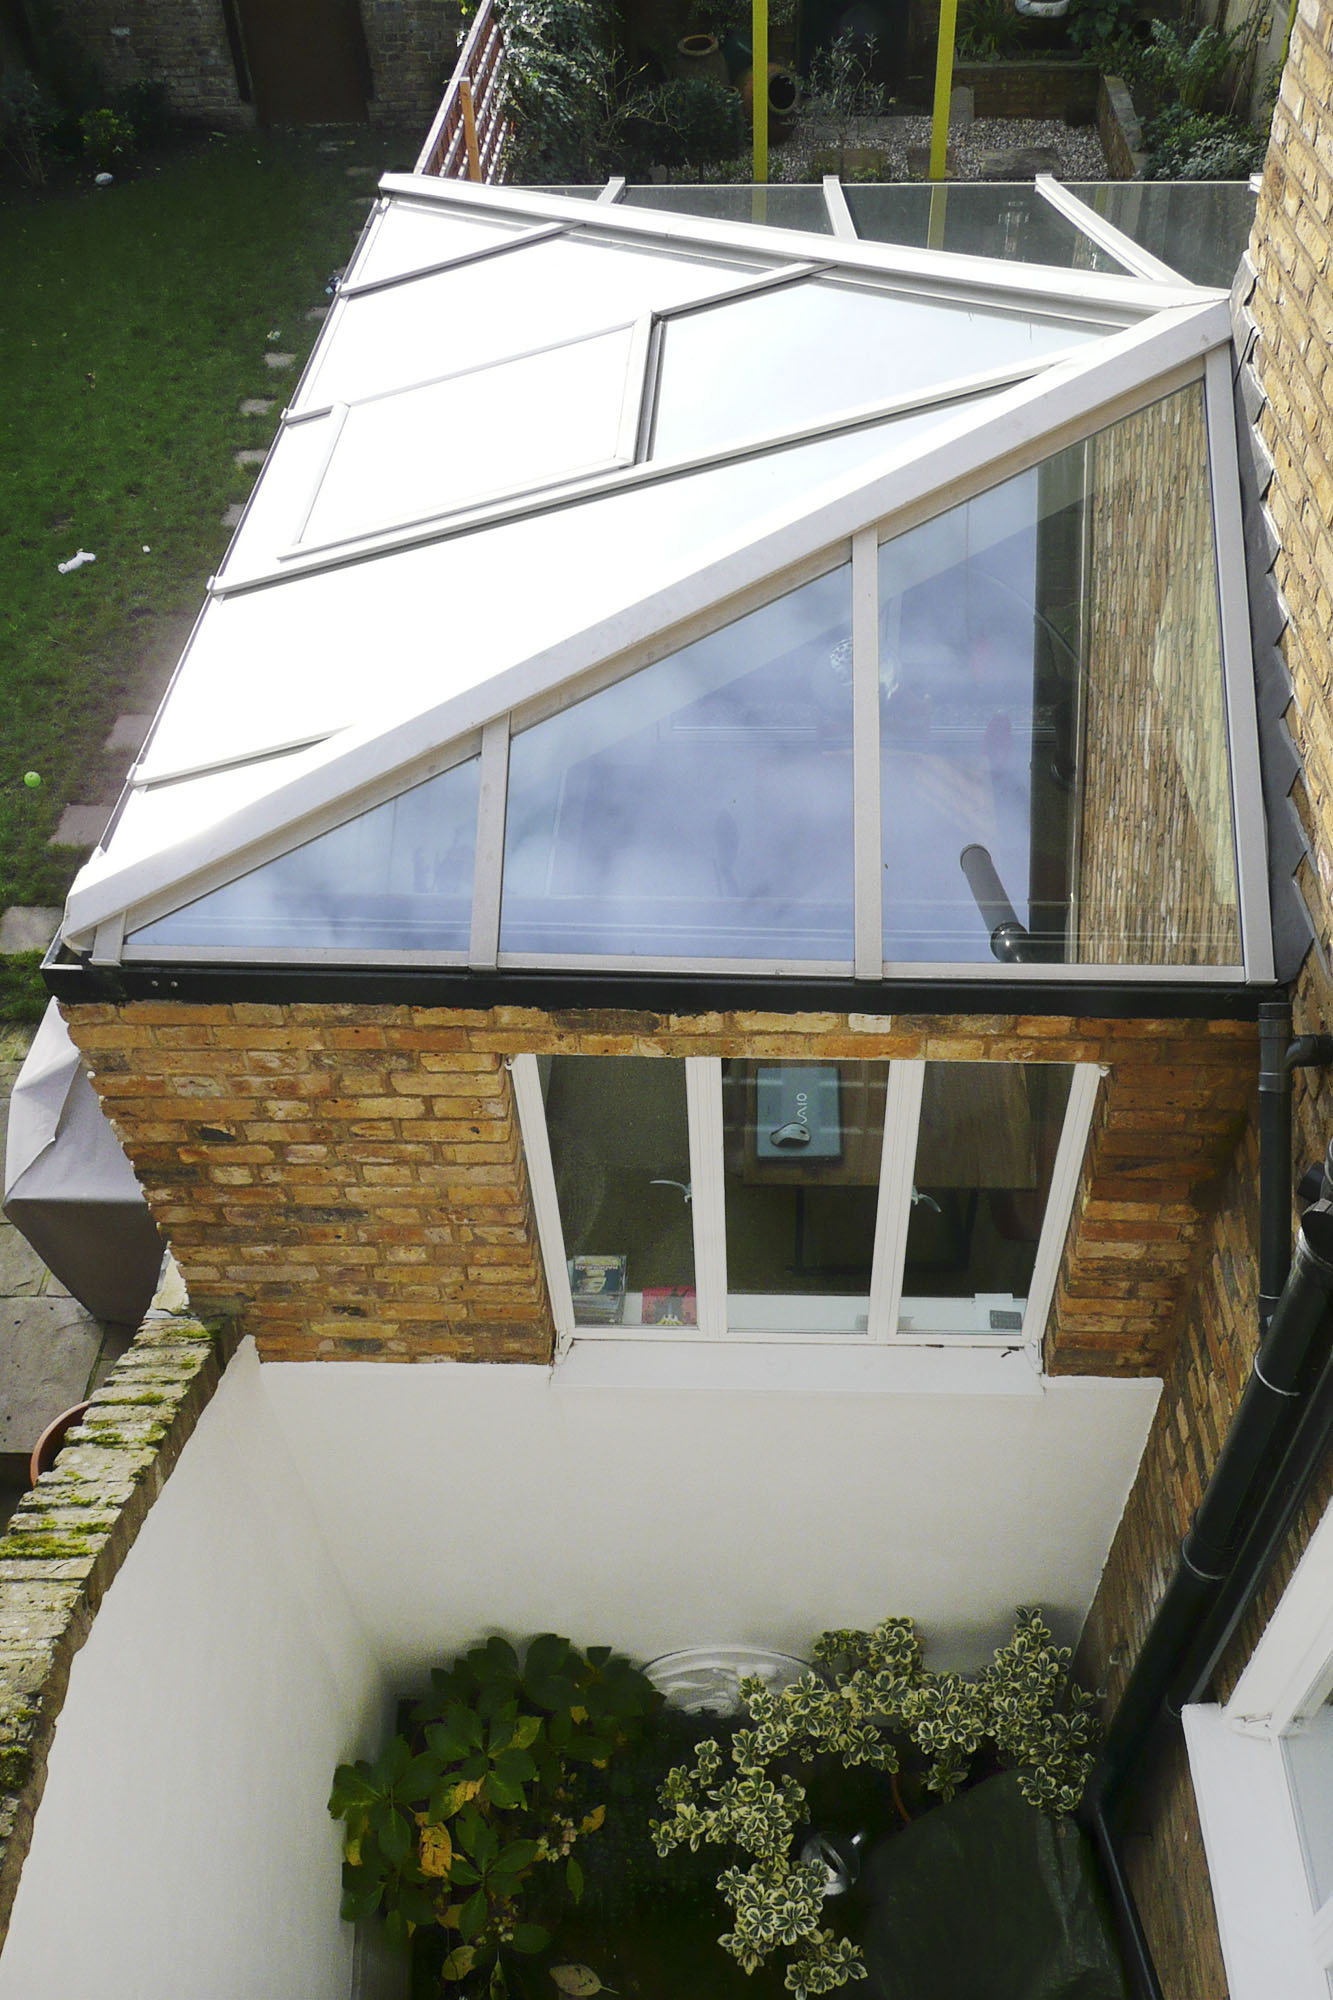 - marchini-architecture.com, - Clapham, - rear extension, -Crittall windows, - glass roof, - garden room, - patent glazing, - lightwell